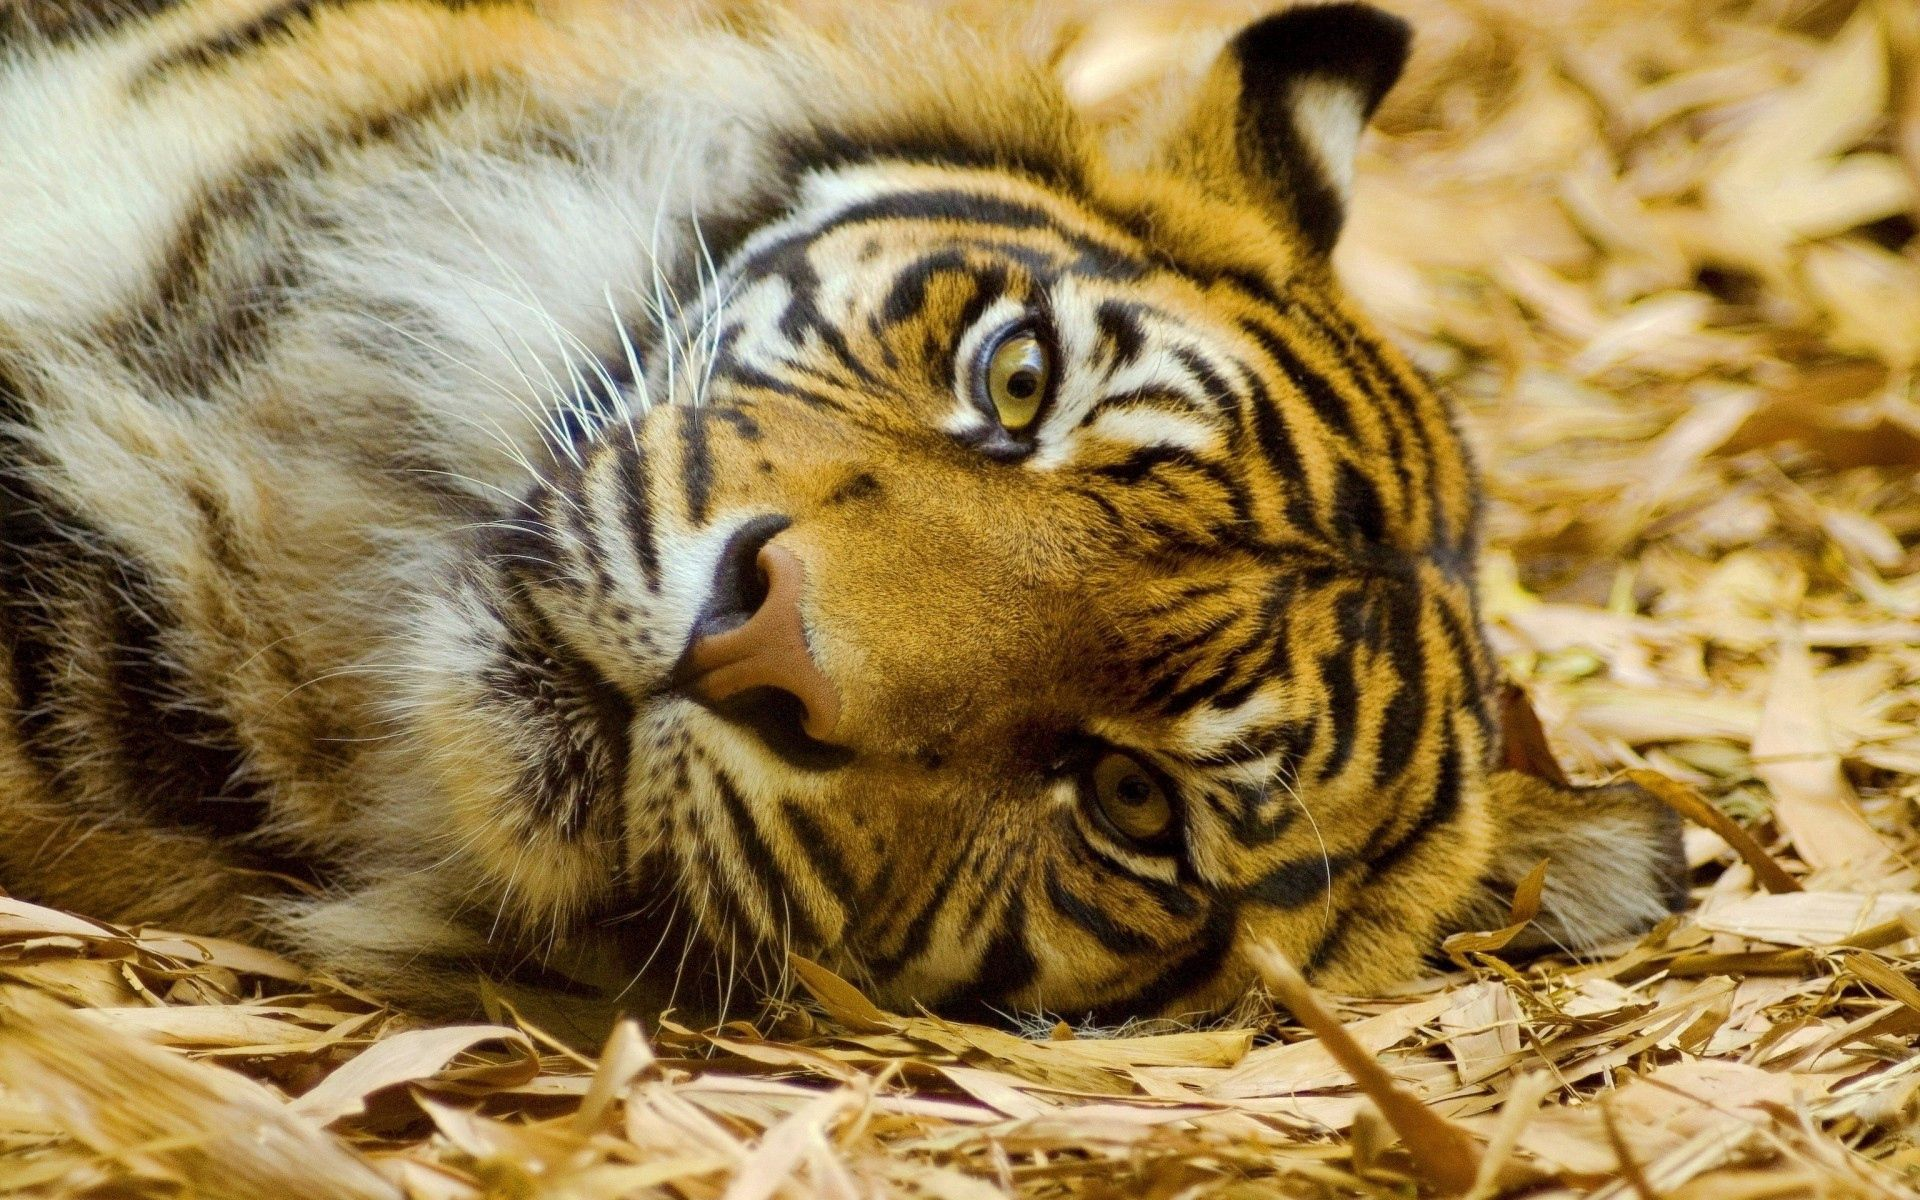 105733 download wallpaper Animals, Tiger, Muzzle, Big Cat, Sight, Opinion, Lies screensavers and pictures for free